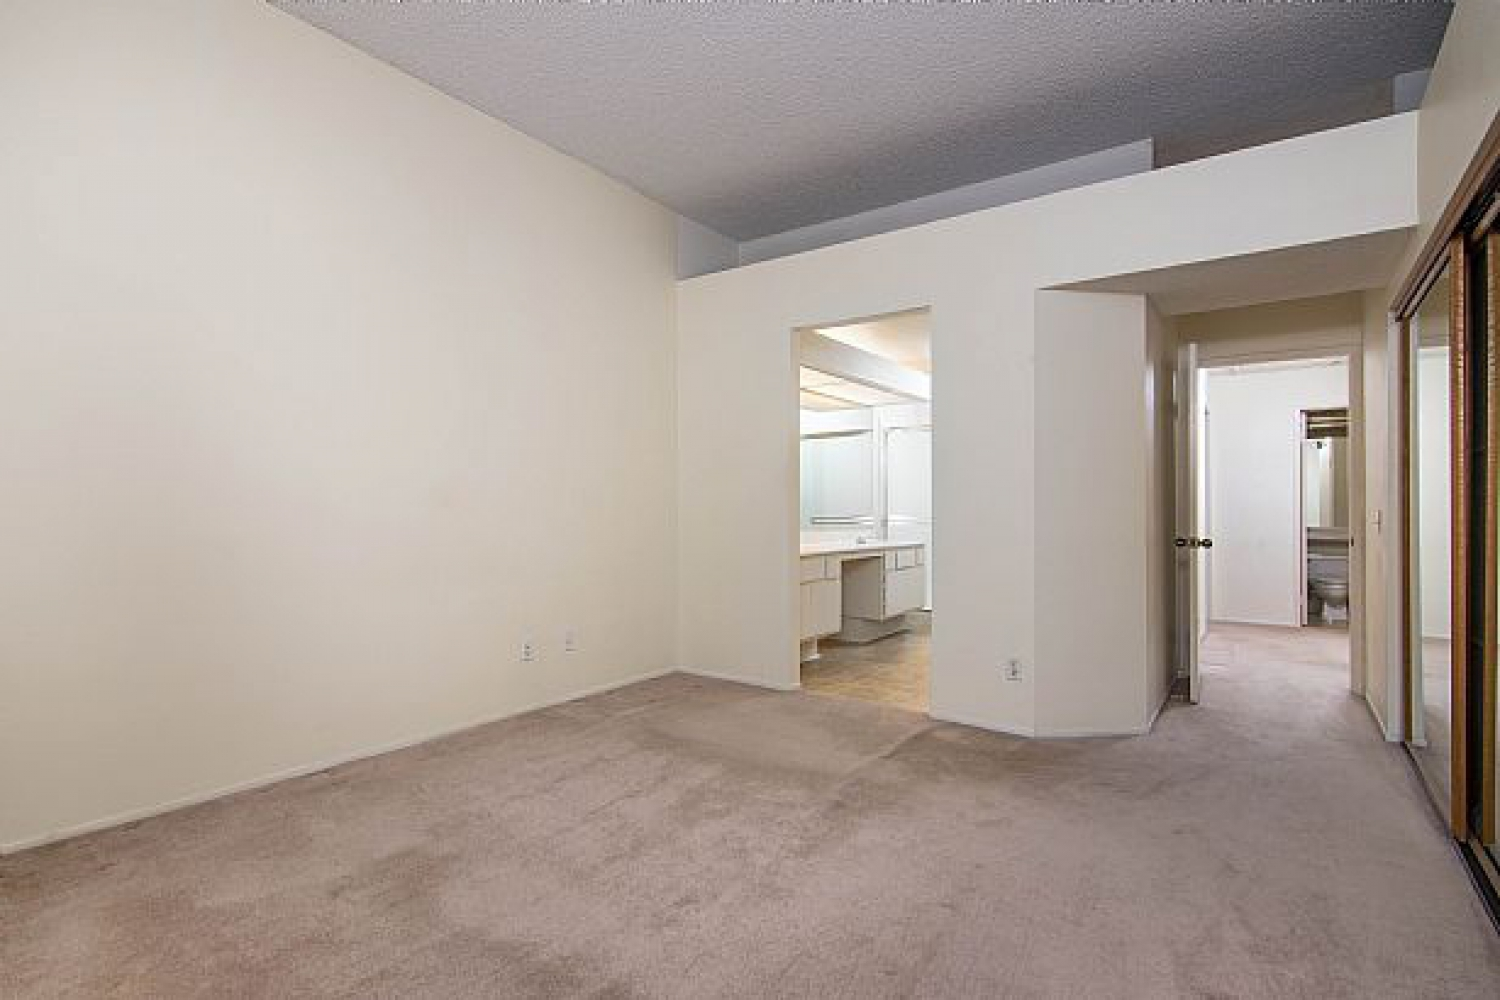 23930 Arroyo Park Dr | Photo 23